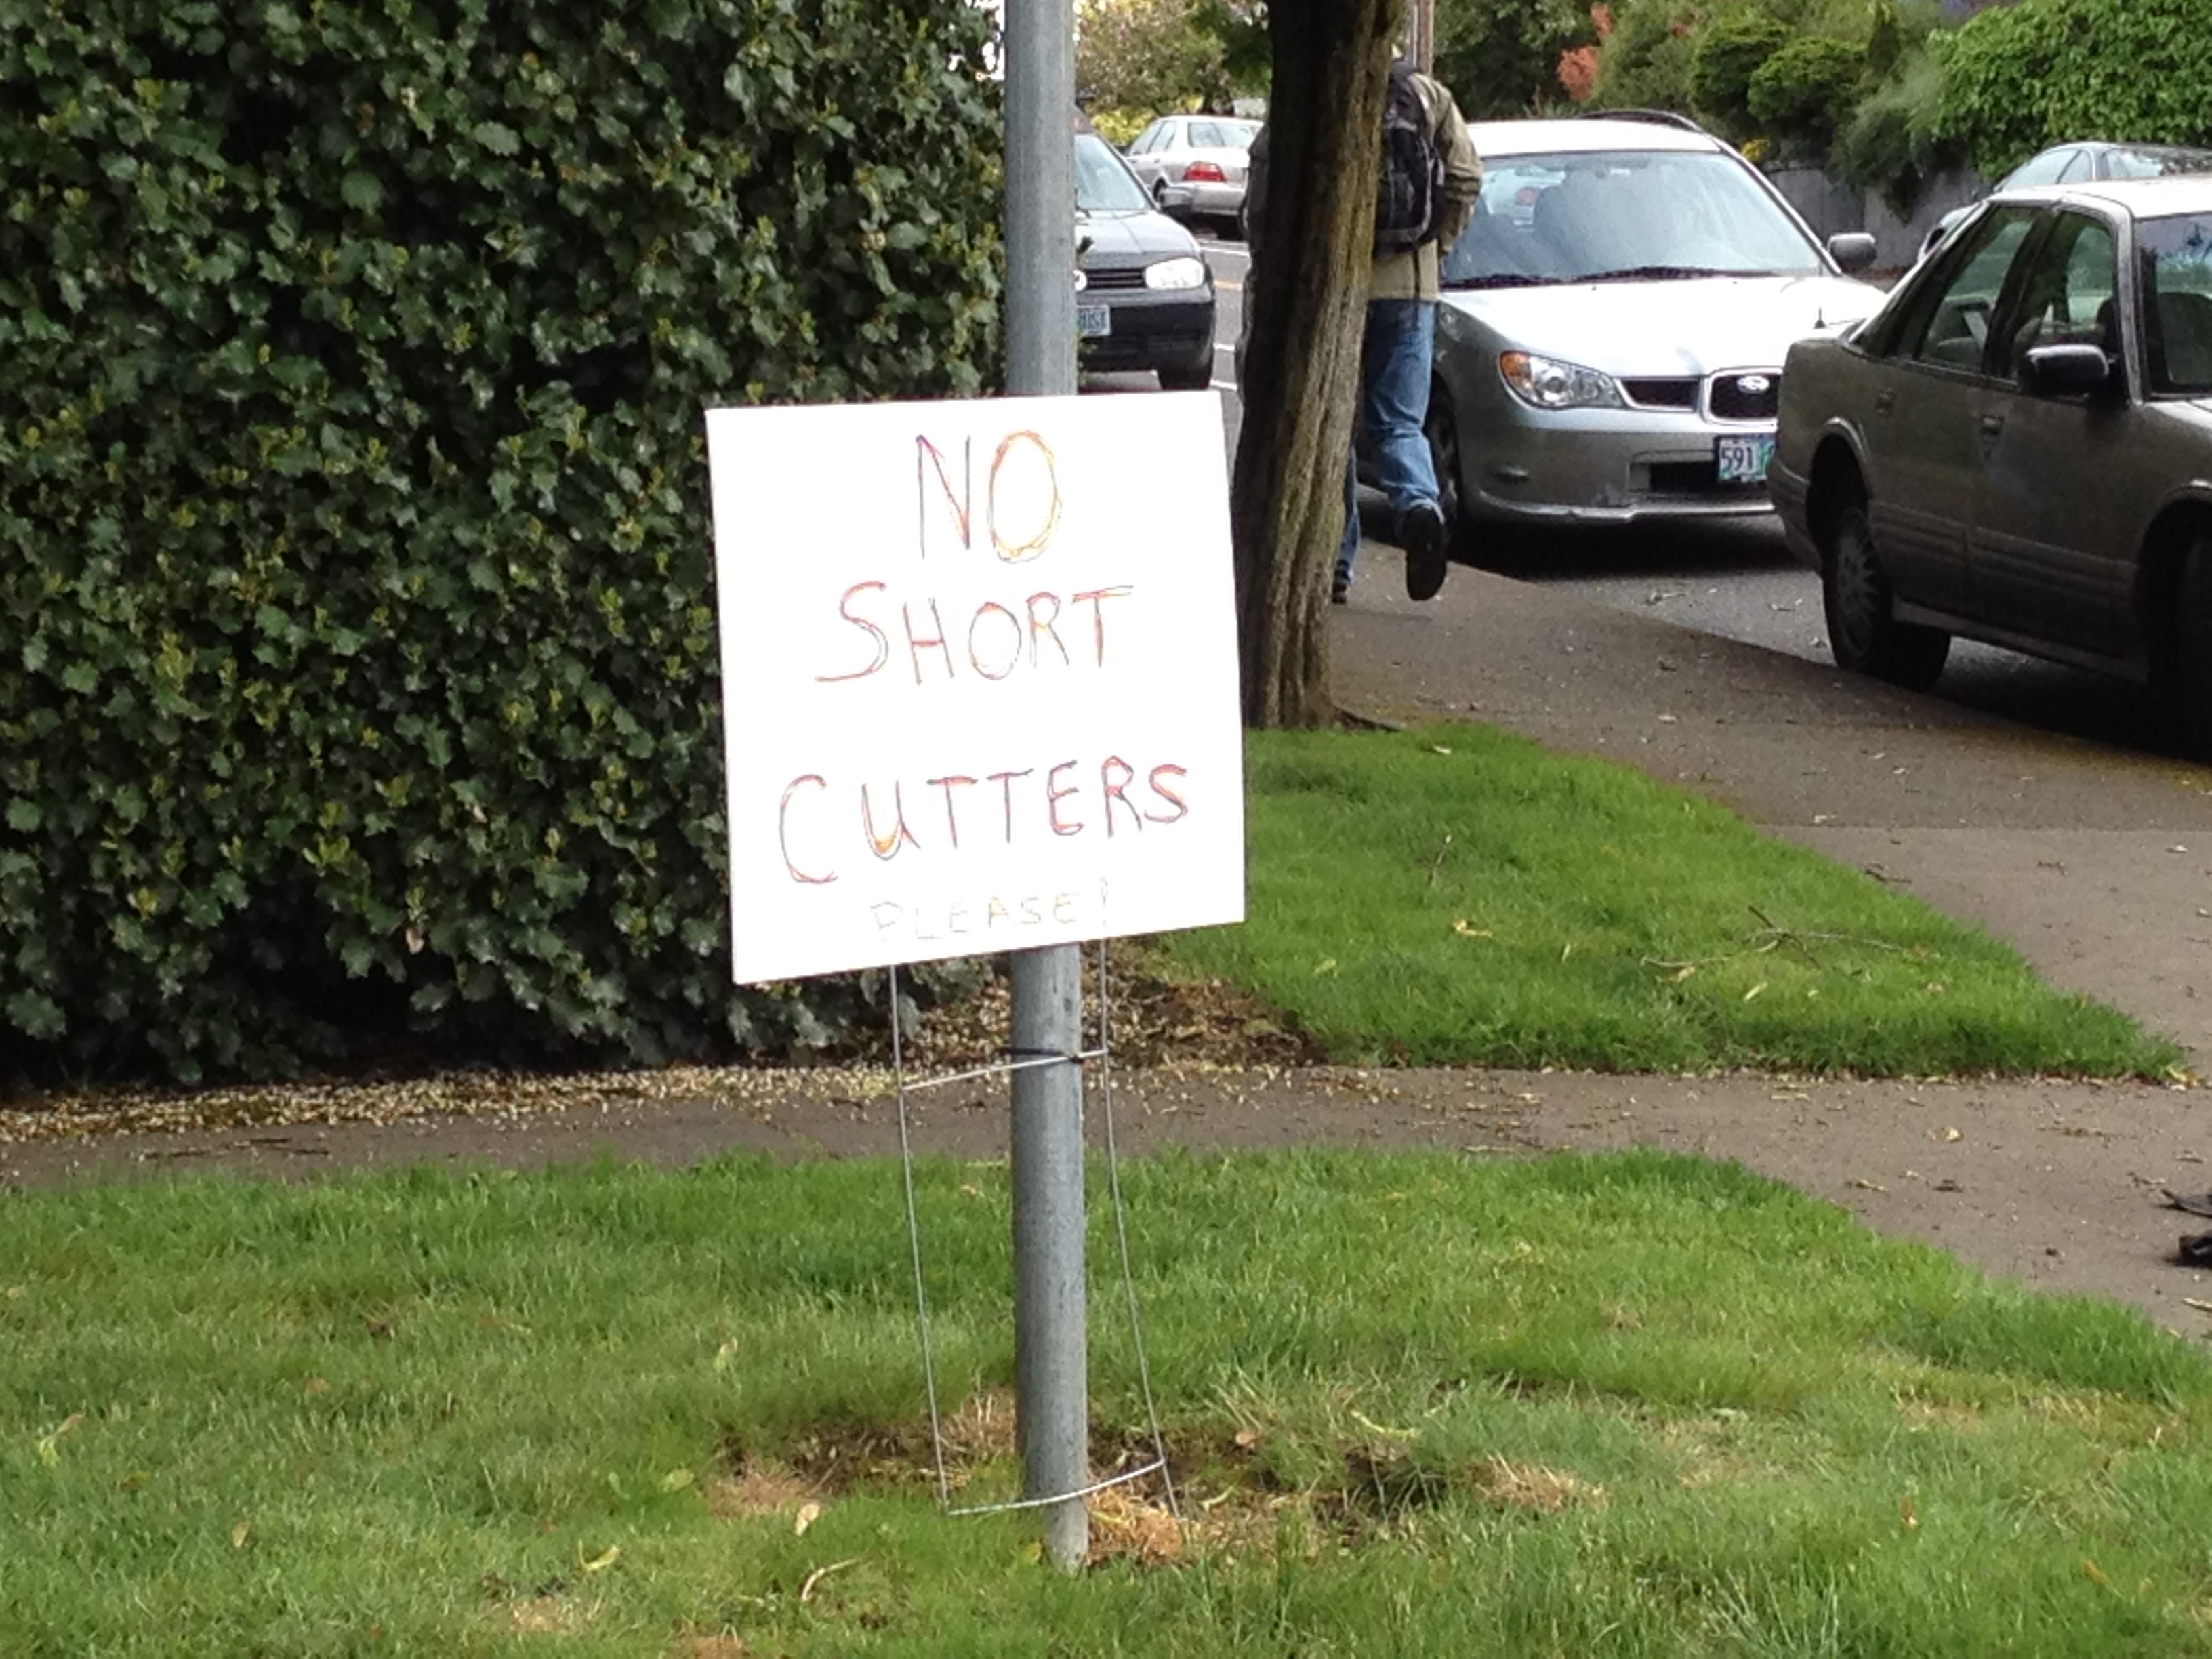 No Short Cutters. Please.